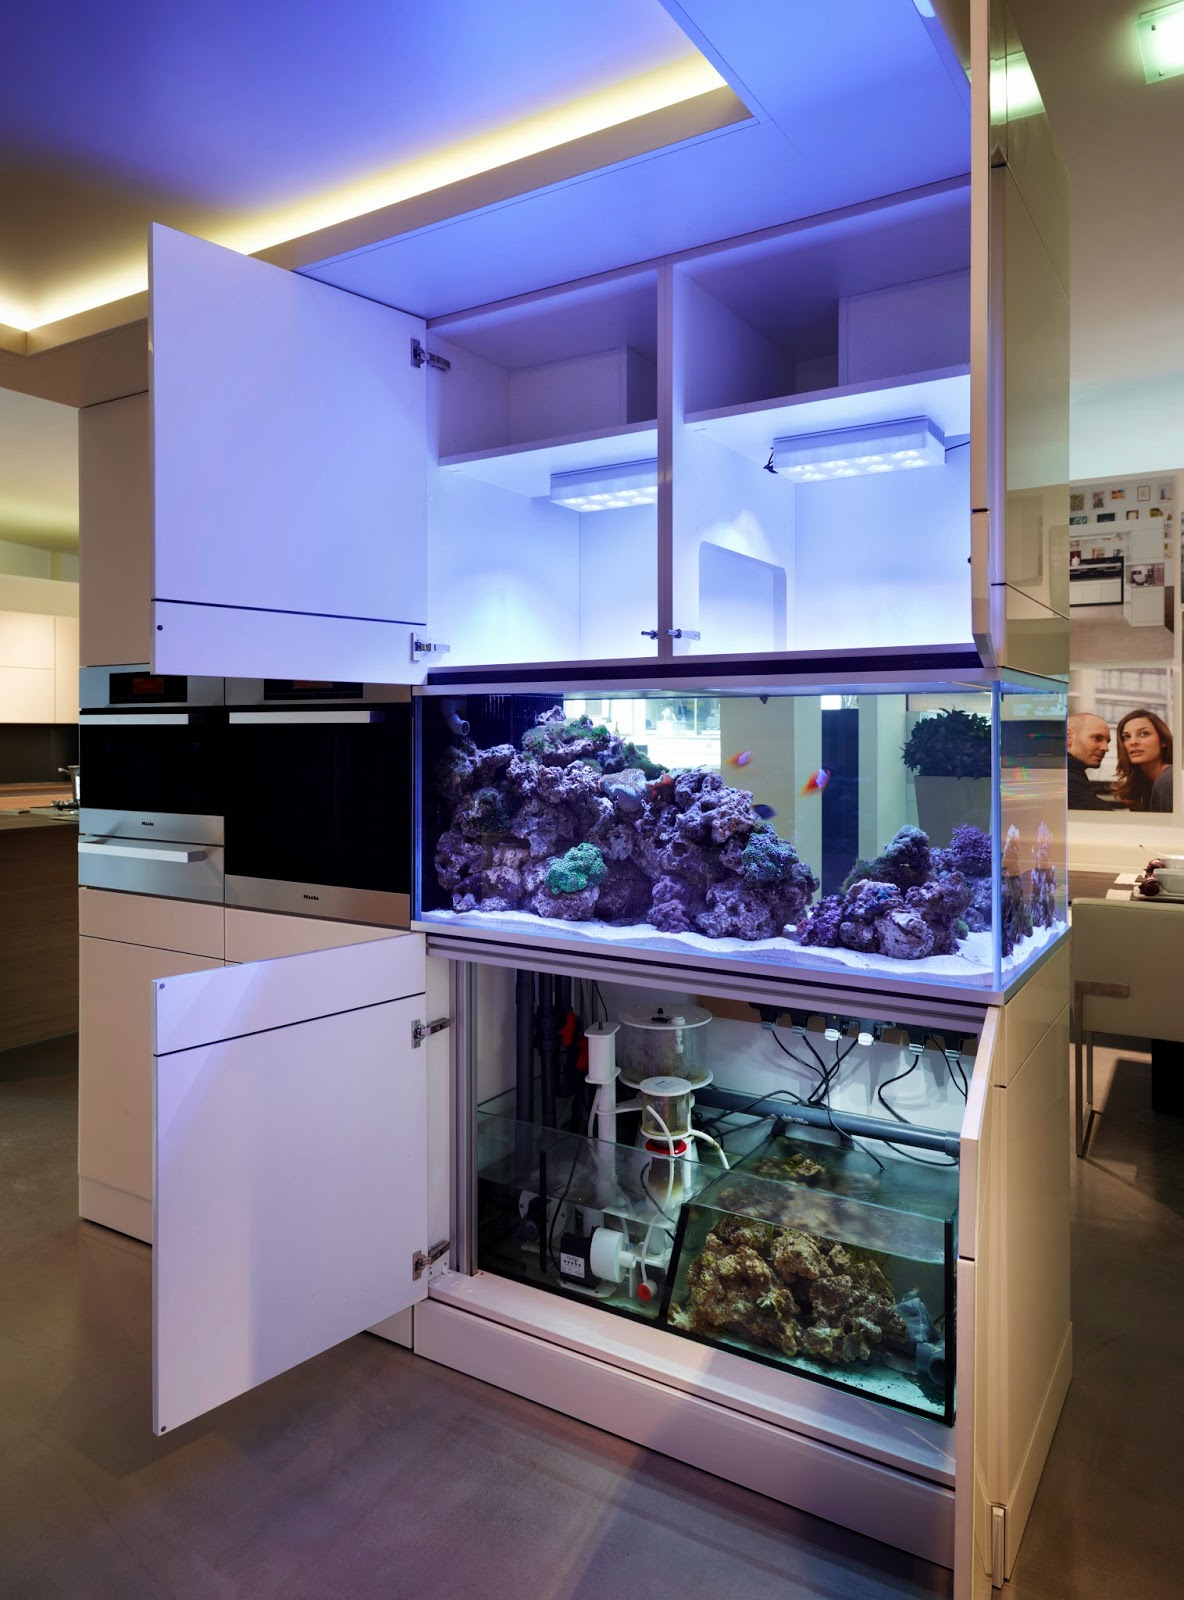 Aquafront aquarium showing plumbing and ventilation within Poggenpohl cabinetry.